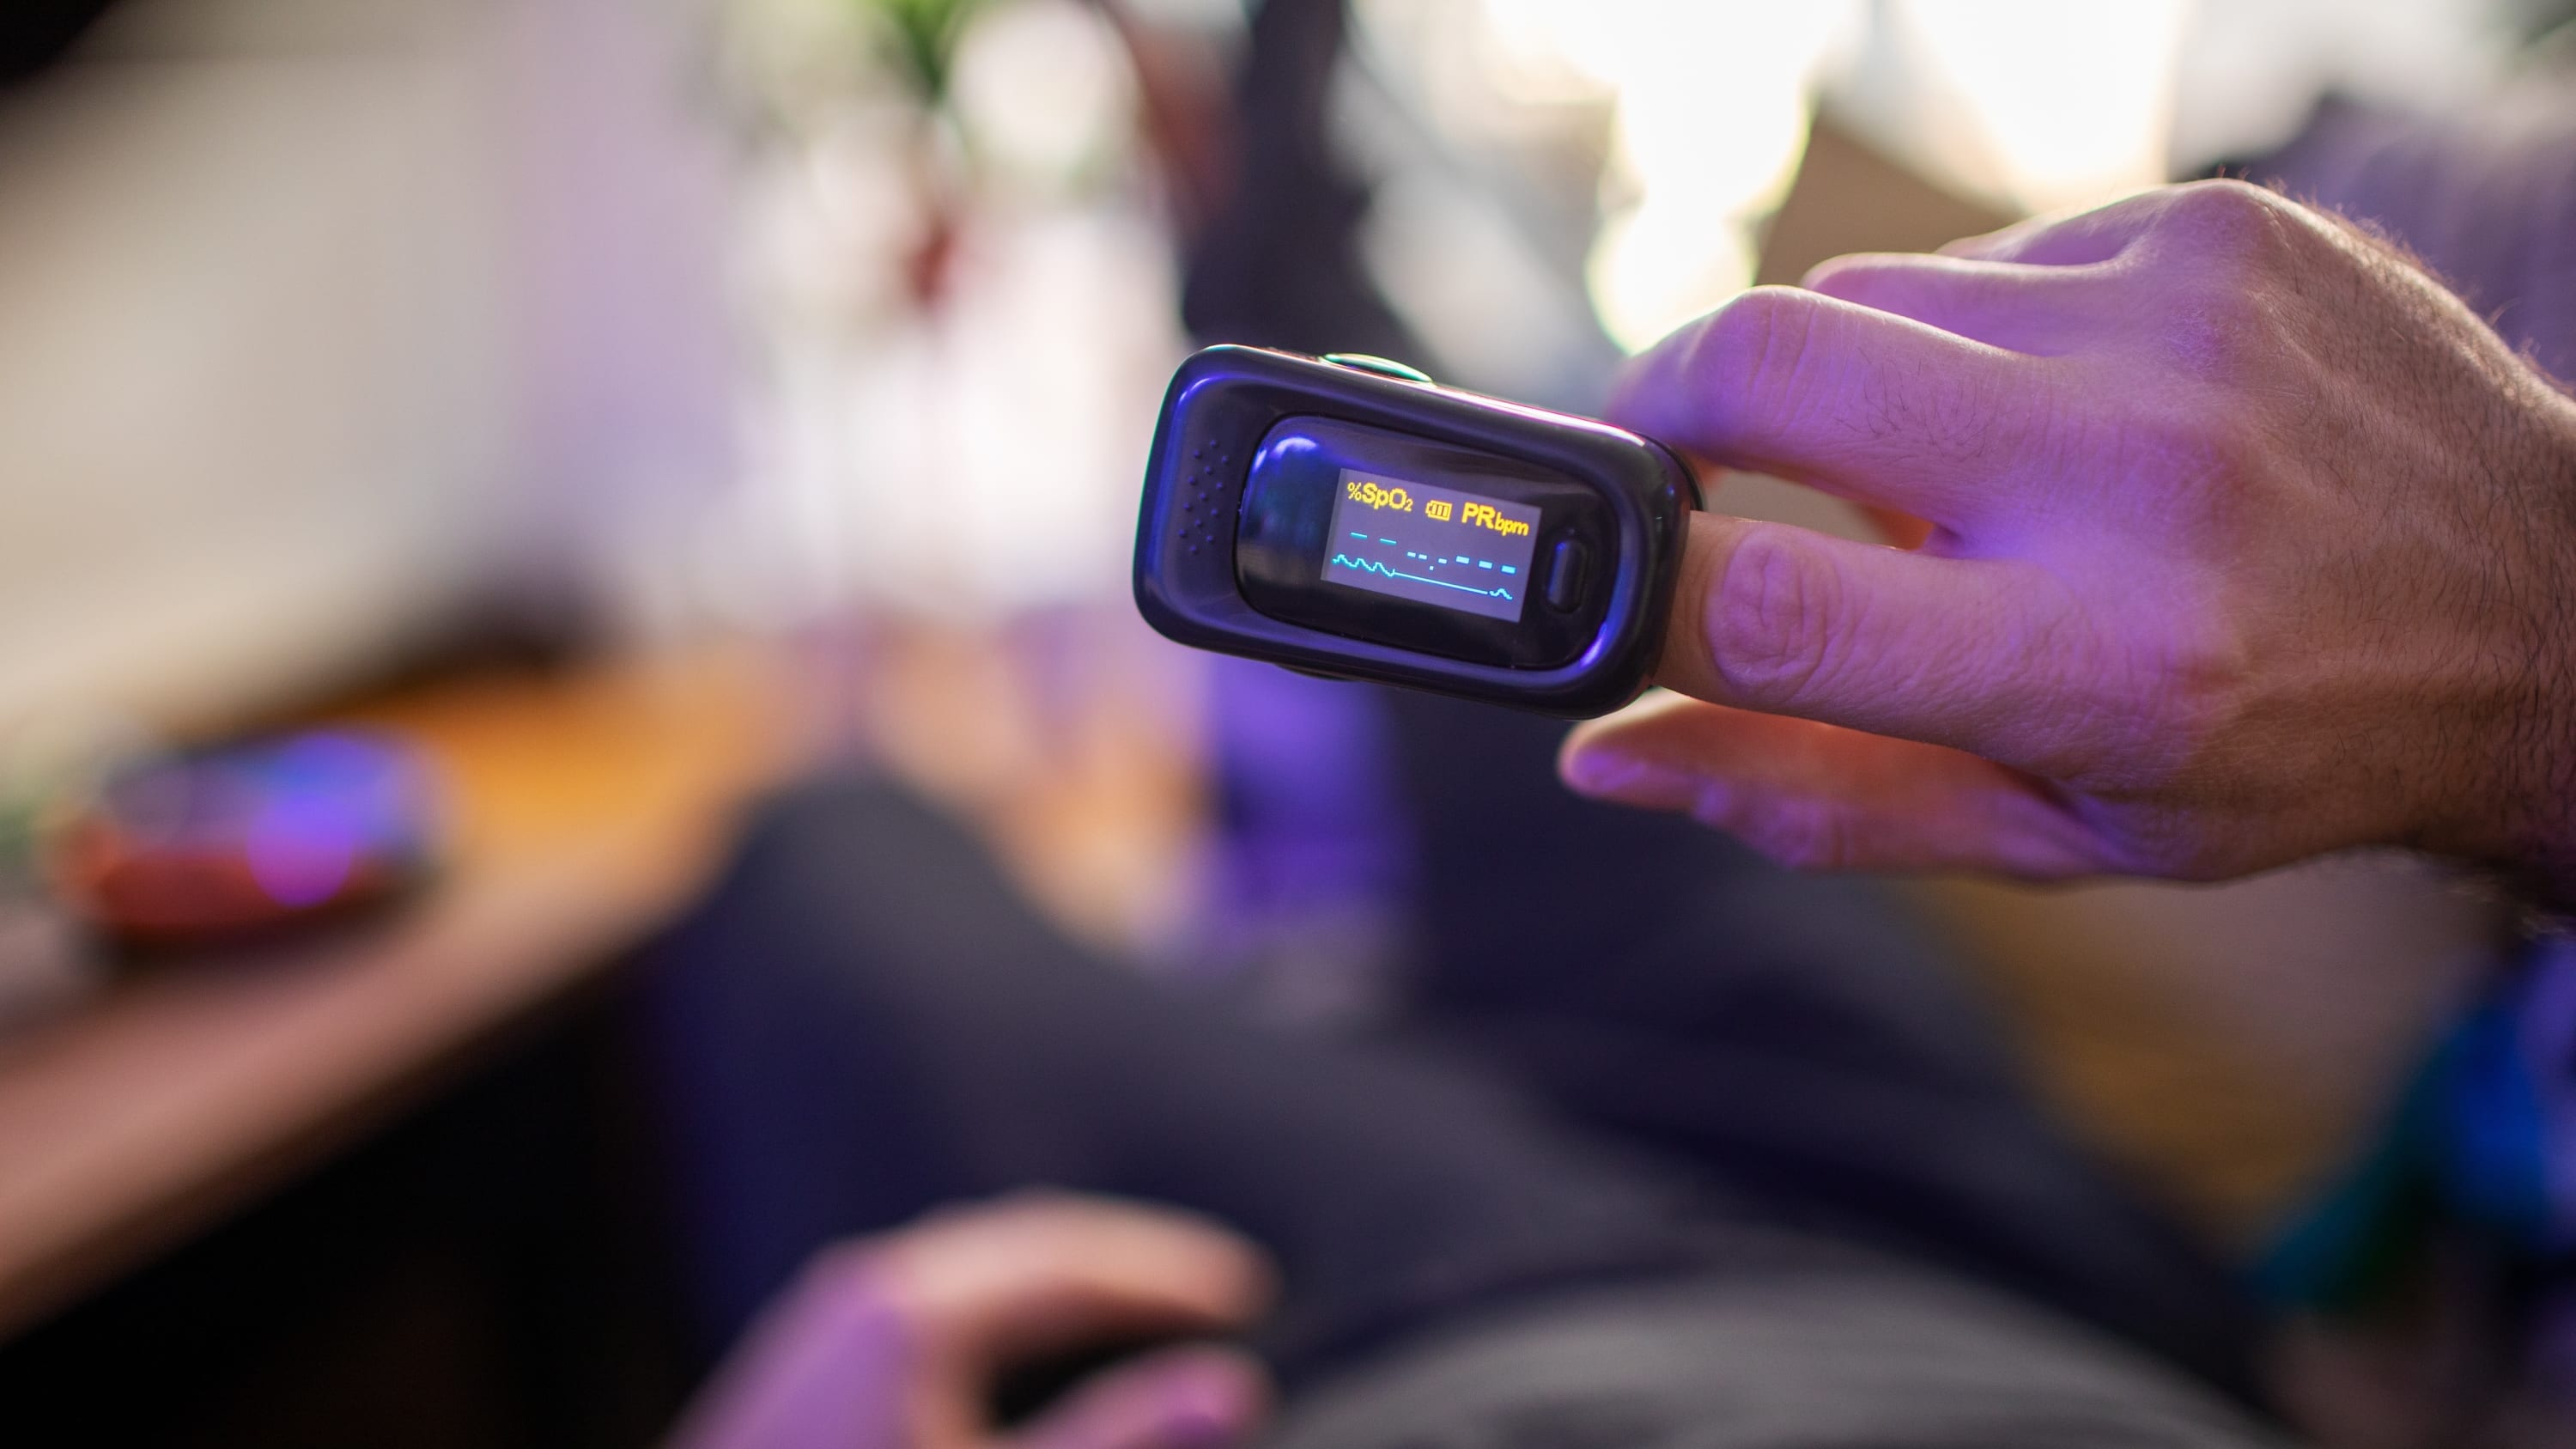 person with at-home pulse oximeter, possibly used to monitoring a COVID-19 symptom